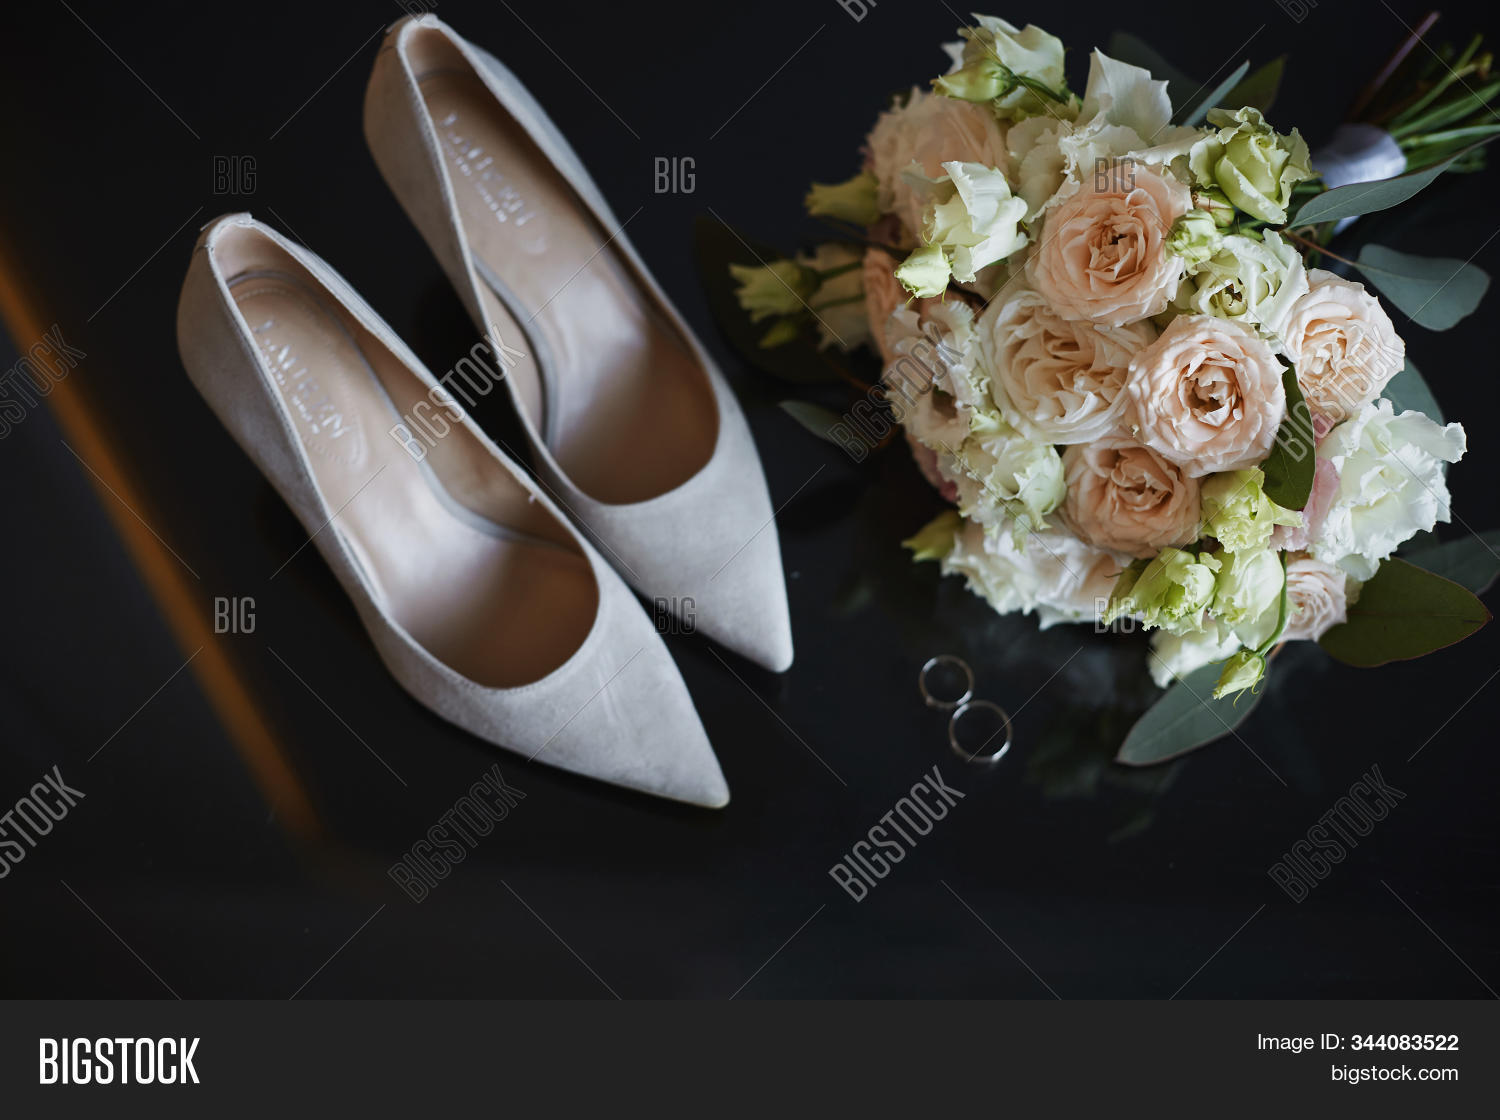 Beautiful Bouquet Image Photo Free Trial Bigstock